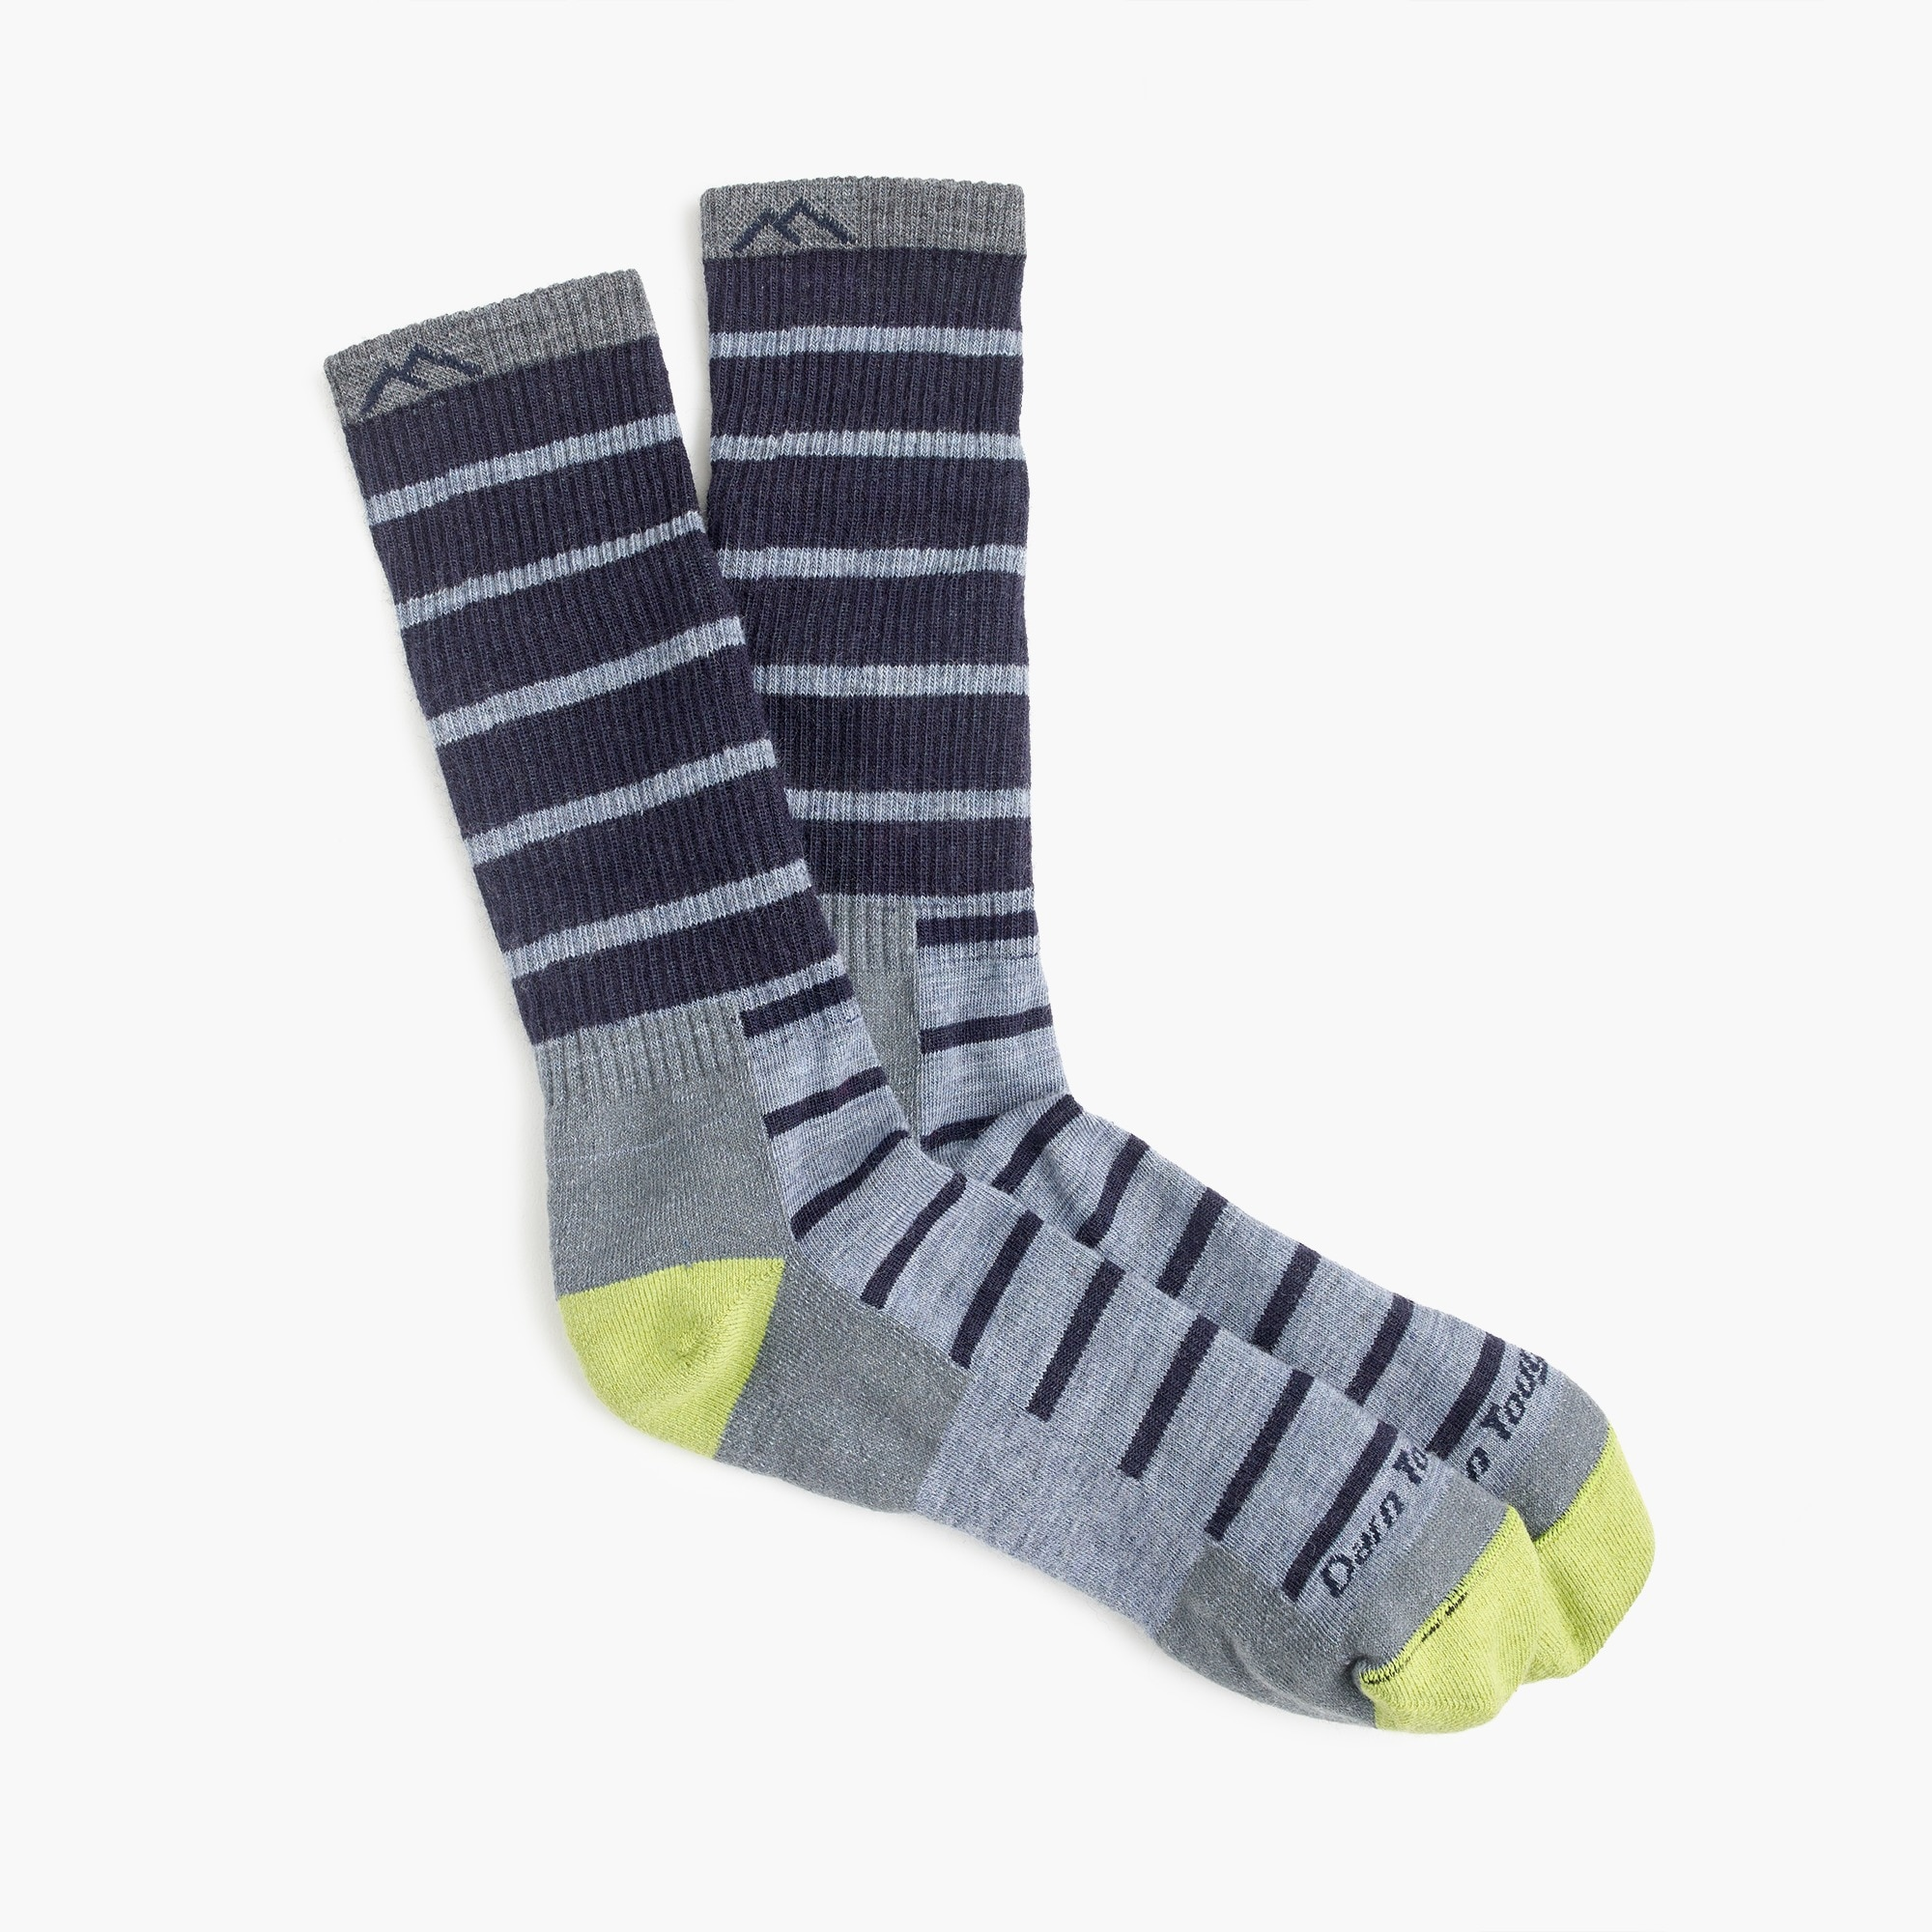 Darn Tough Vermont® for J.Crew striped socks men socks c